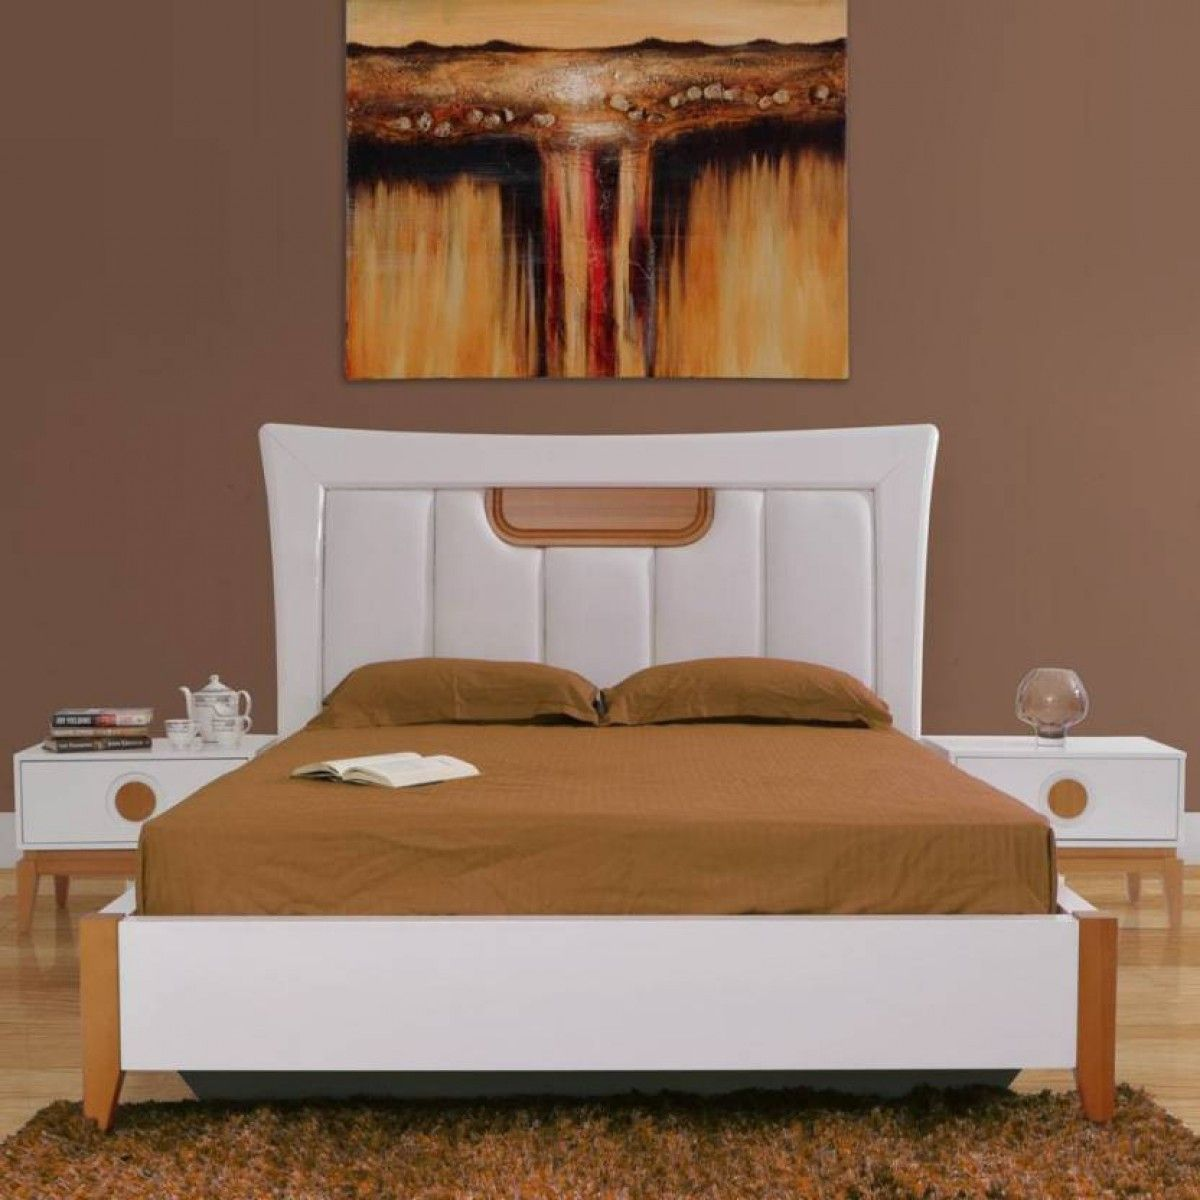 Gorevizon Queen Size Engineered Wood Bed With Headboard Storage Espresso Finish Cheap King Size Beds Headboard Storage Headboards For Beds